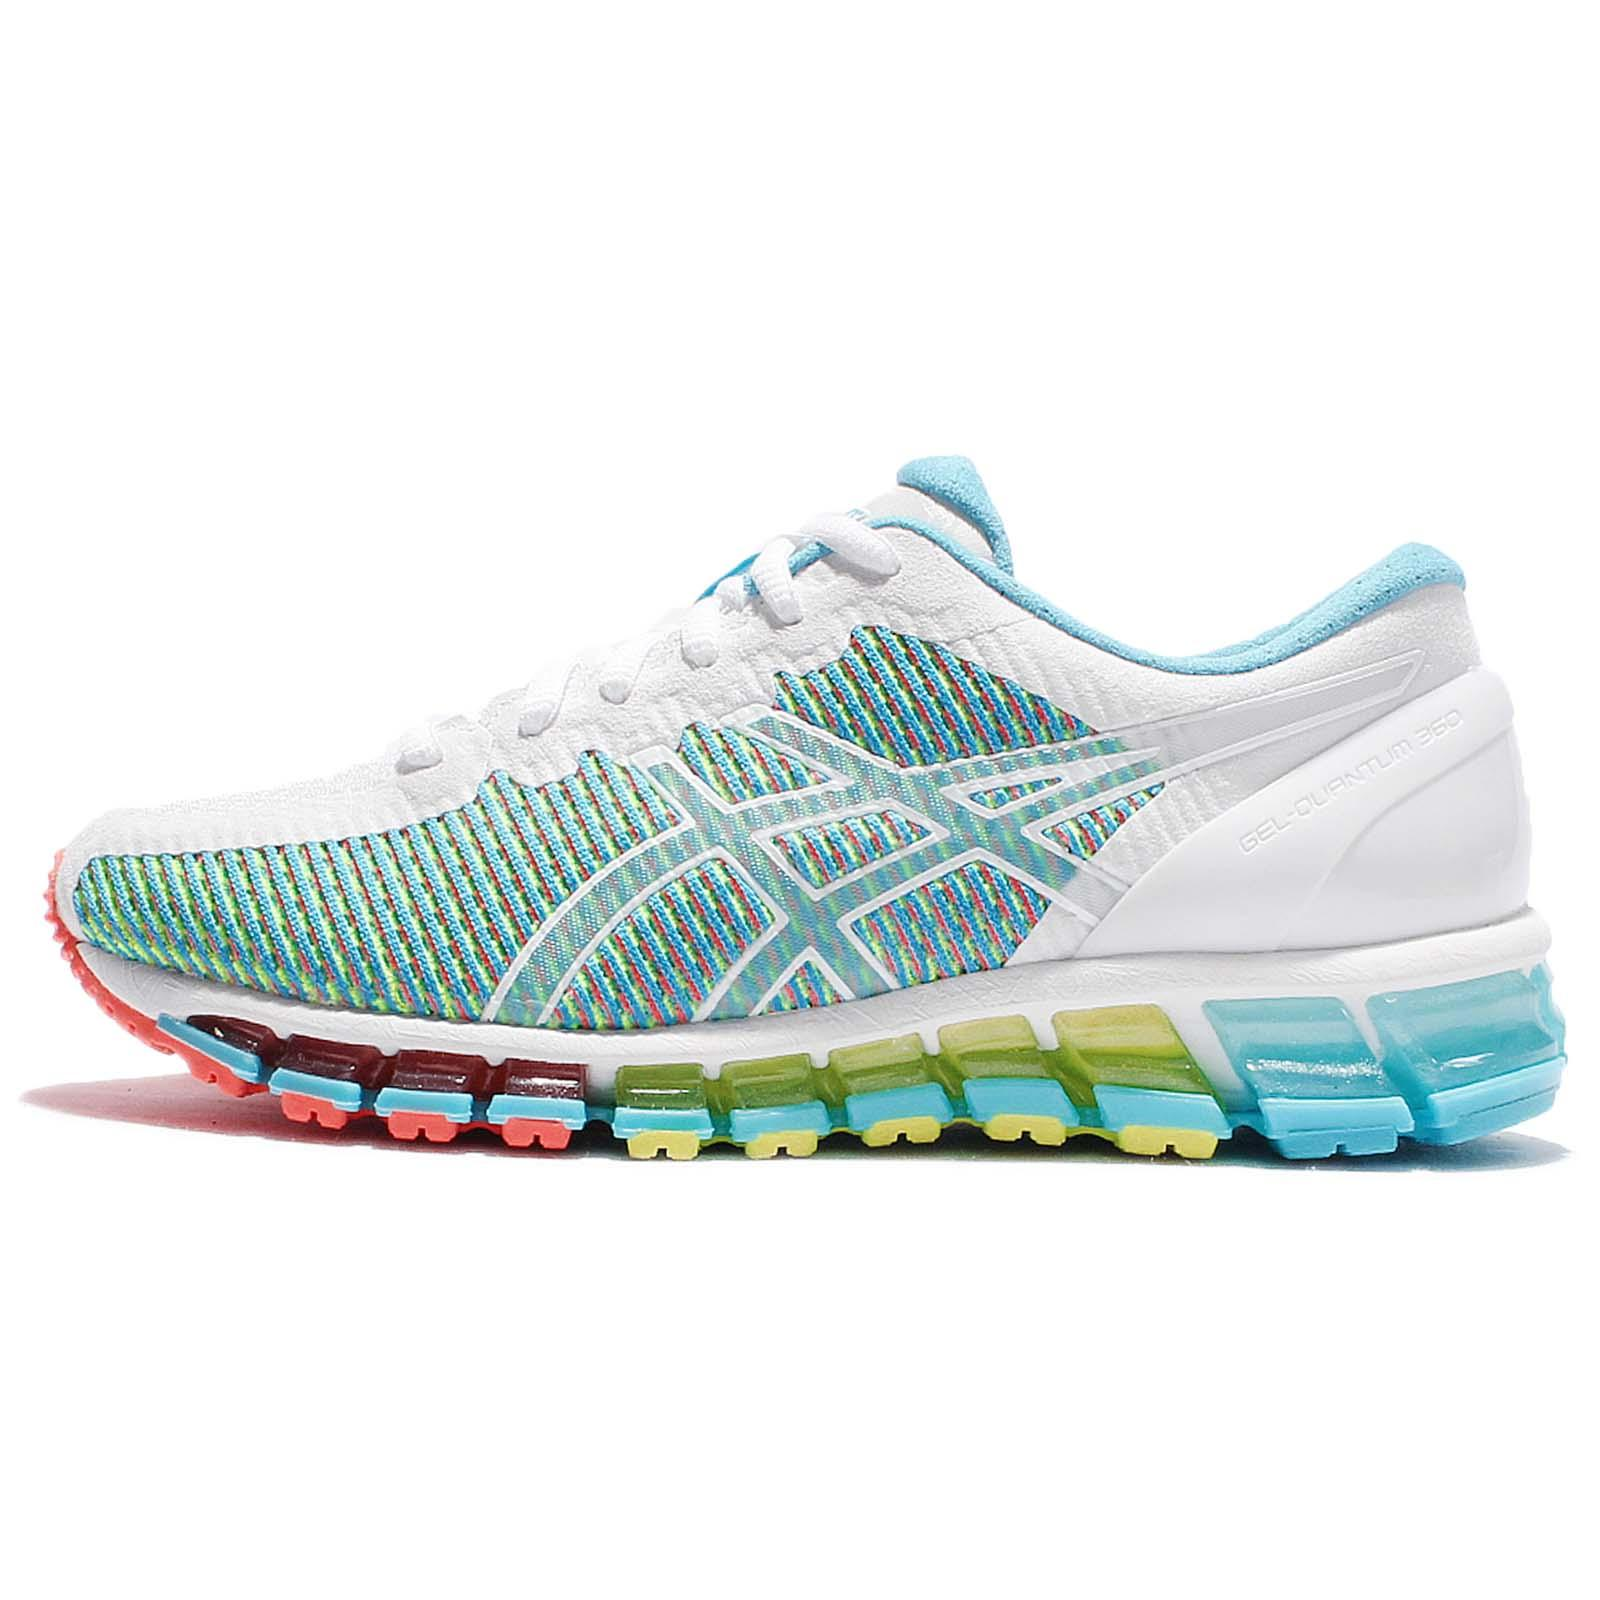 Asics Gel-Quantum 360 CM White Green Red Women Running Shoe Sneakers  T6G6N-0100 d4d652c31